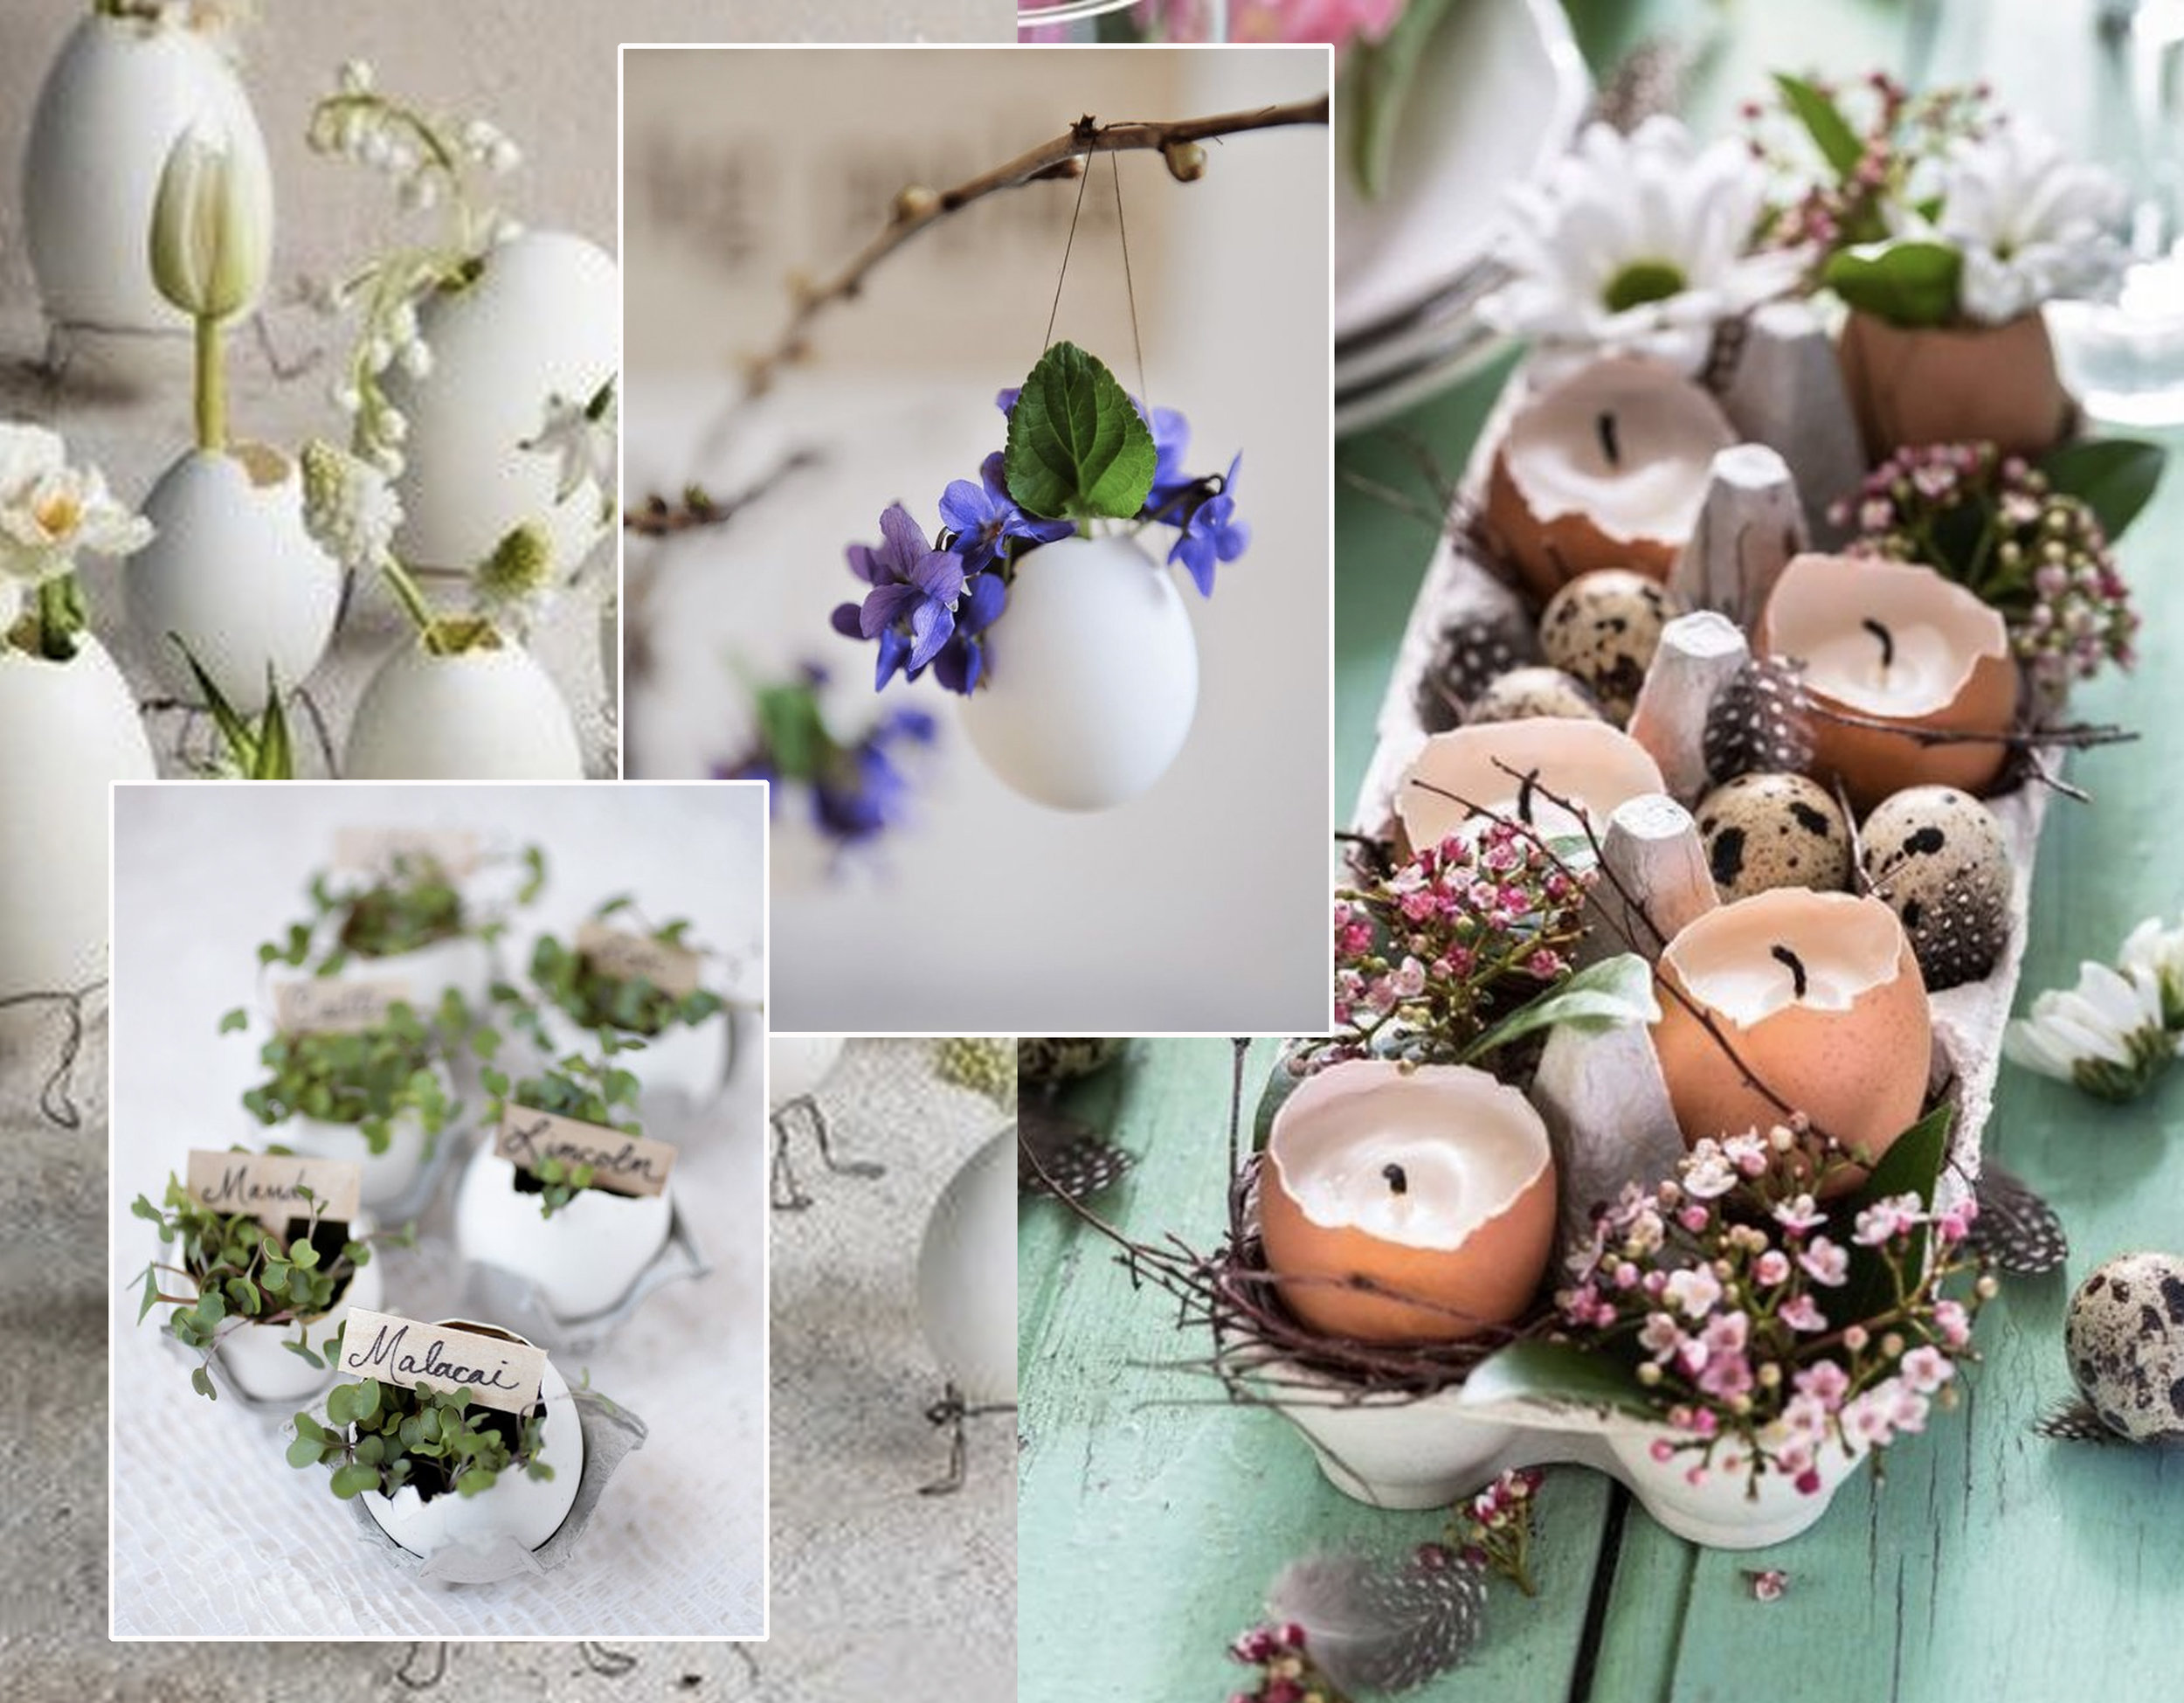 egg shell as small vase via  La plante qui pousse  - egg shell place holder via  The Merry Thought  - egg shel with spring flower via  The Paper Tree  - egg candles via  Jolie